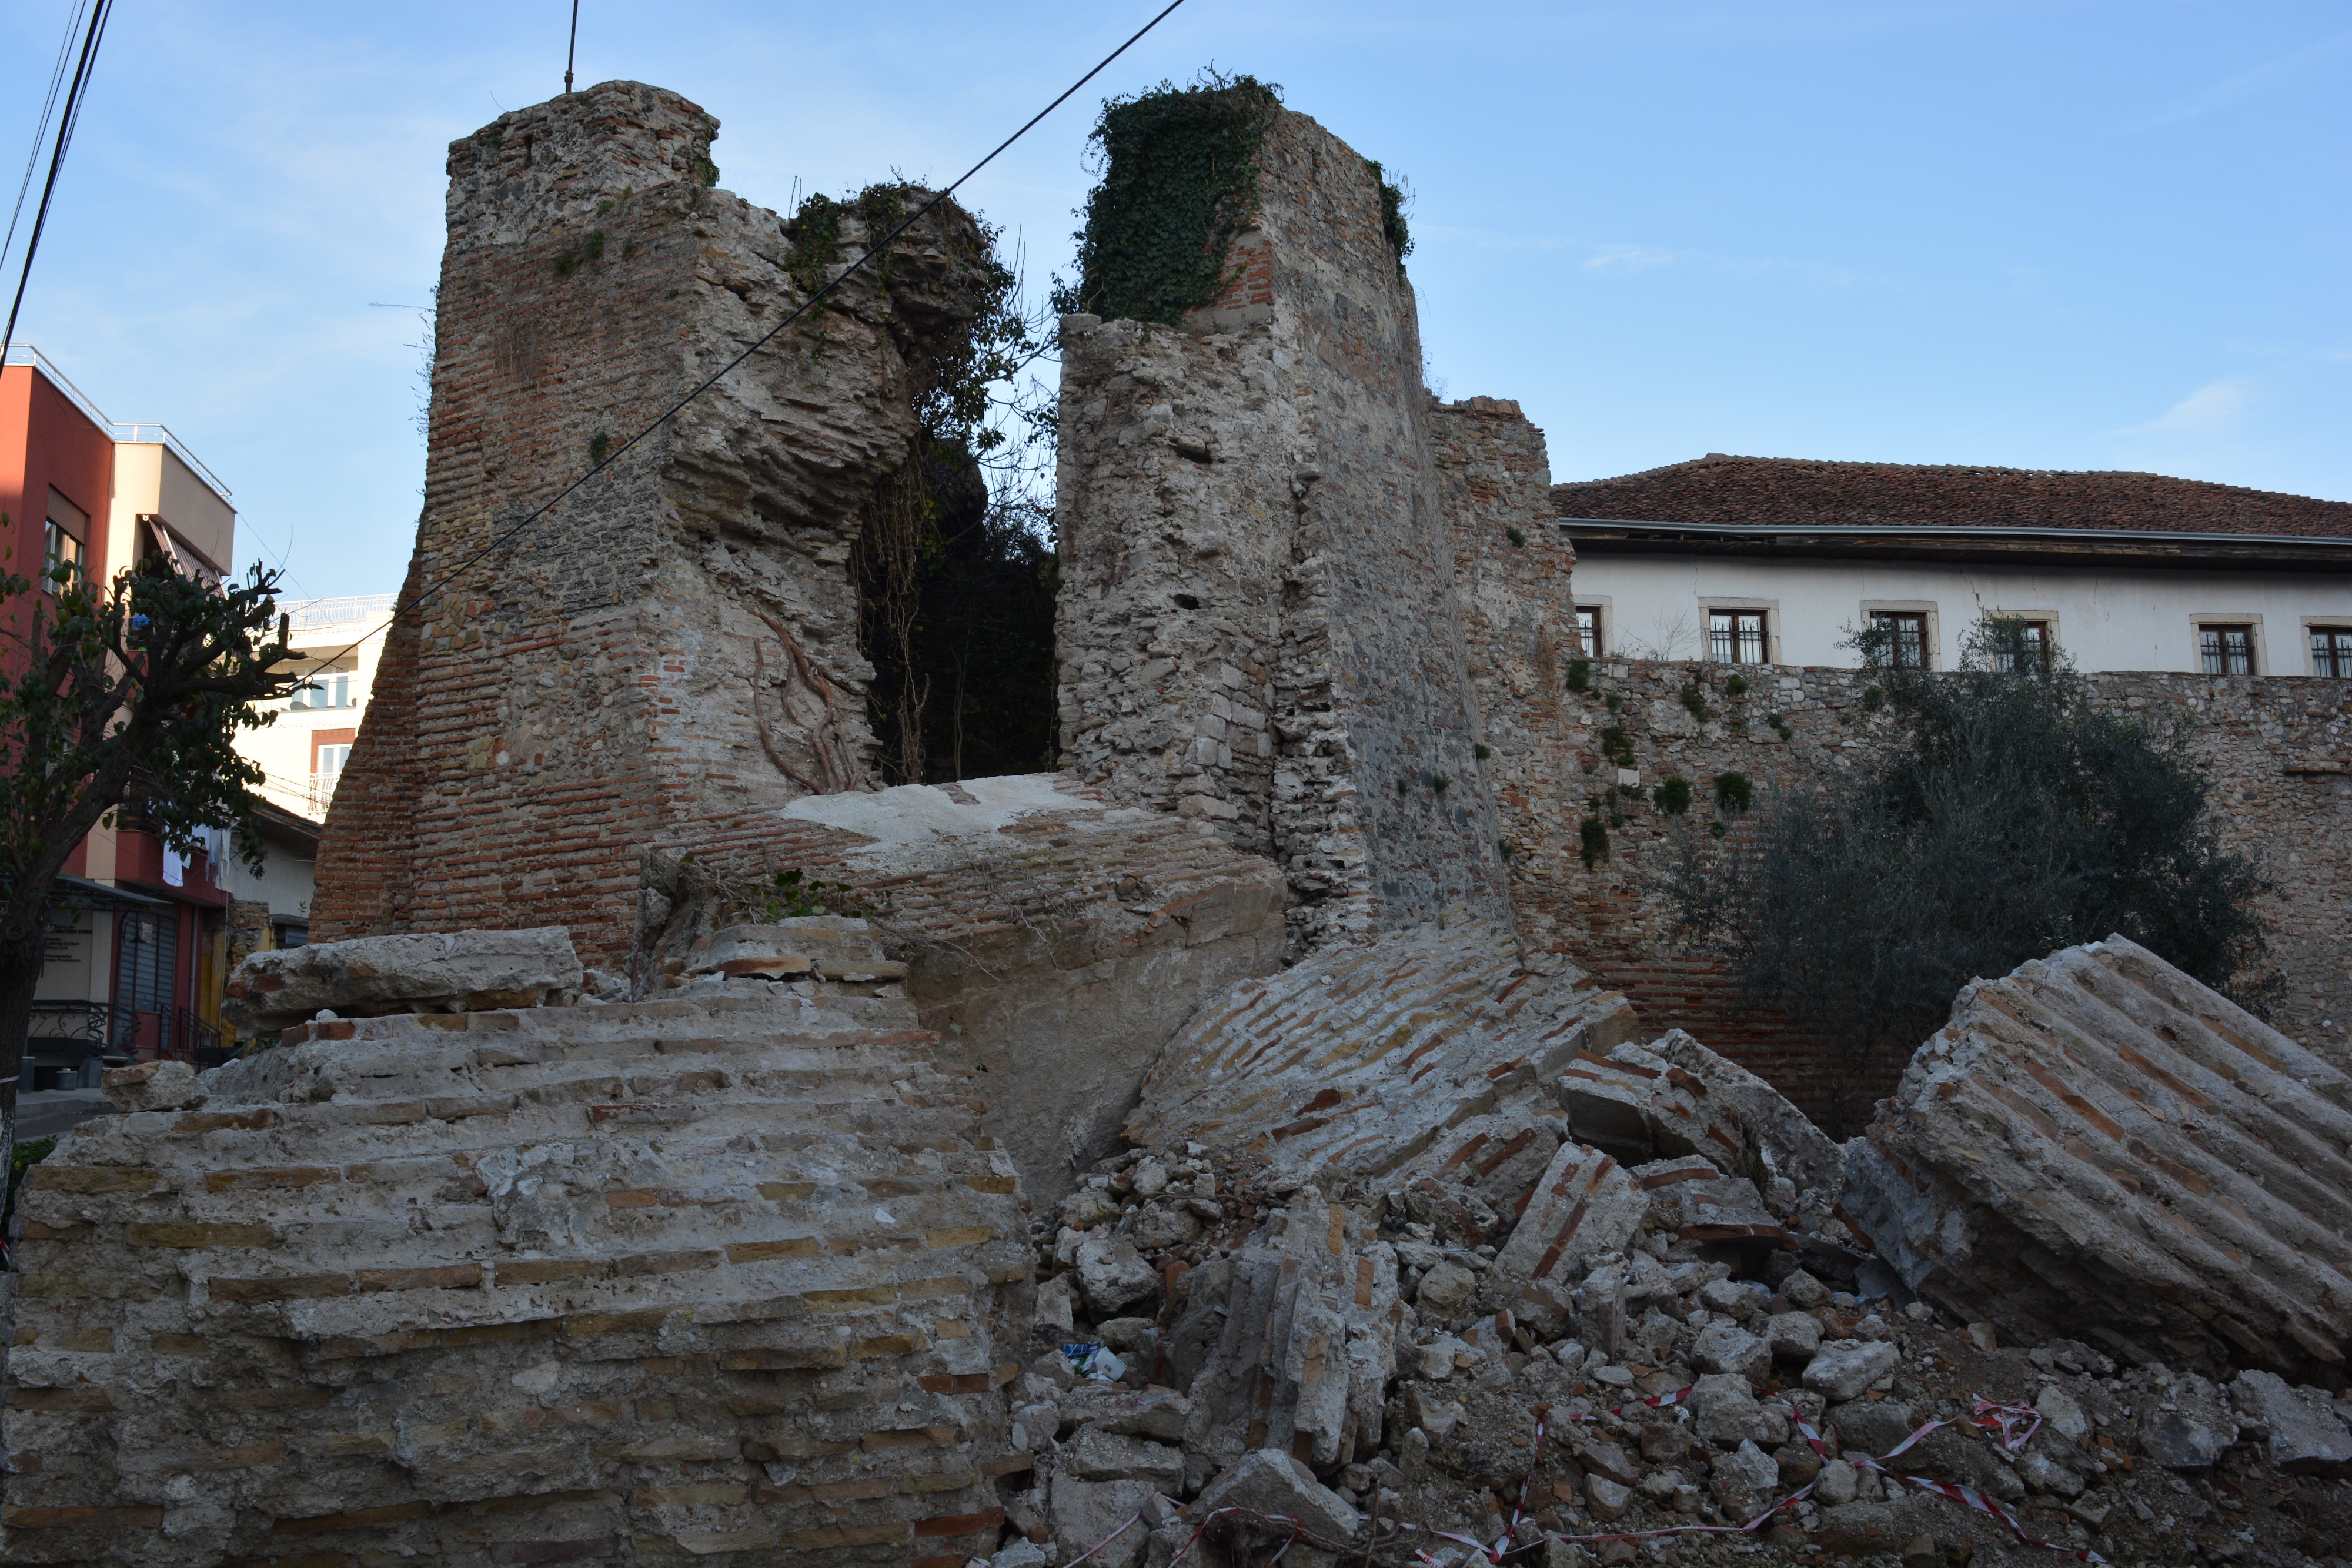 An old byzantine tower, broken down by the earthquake